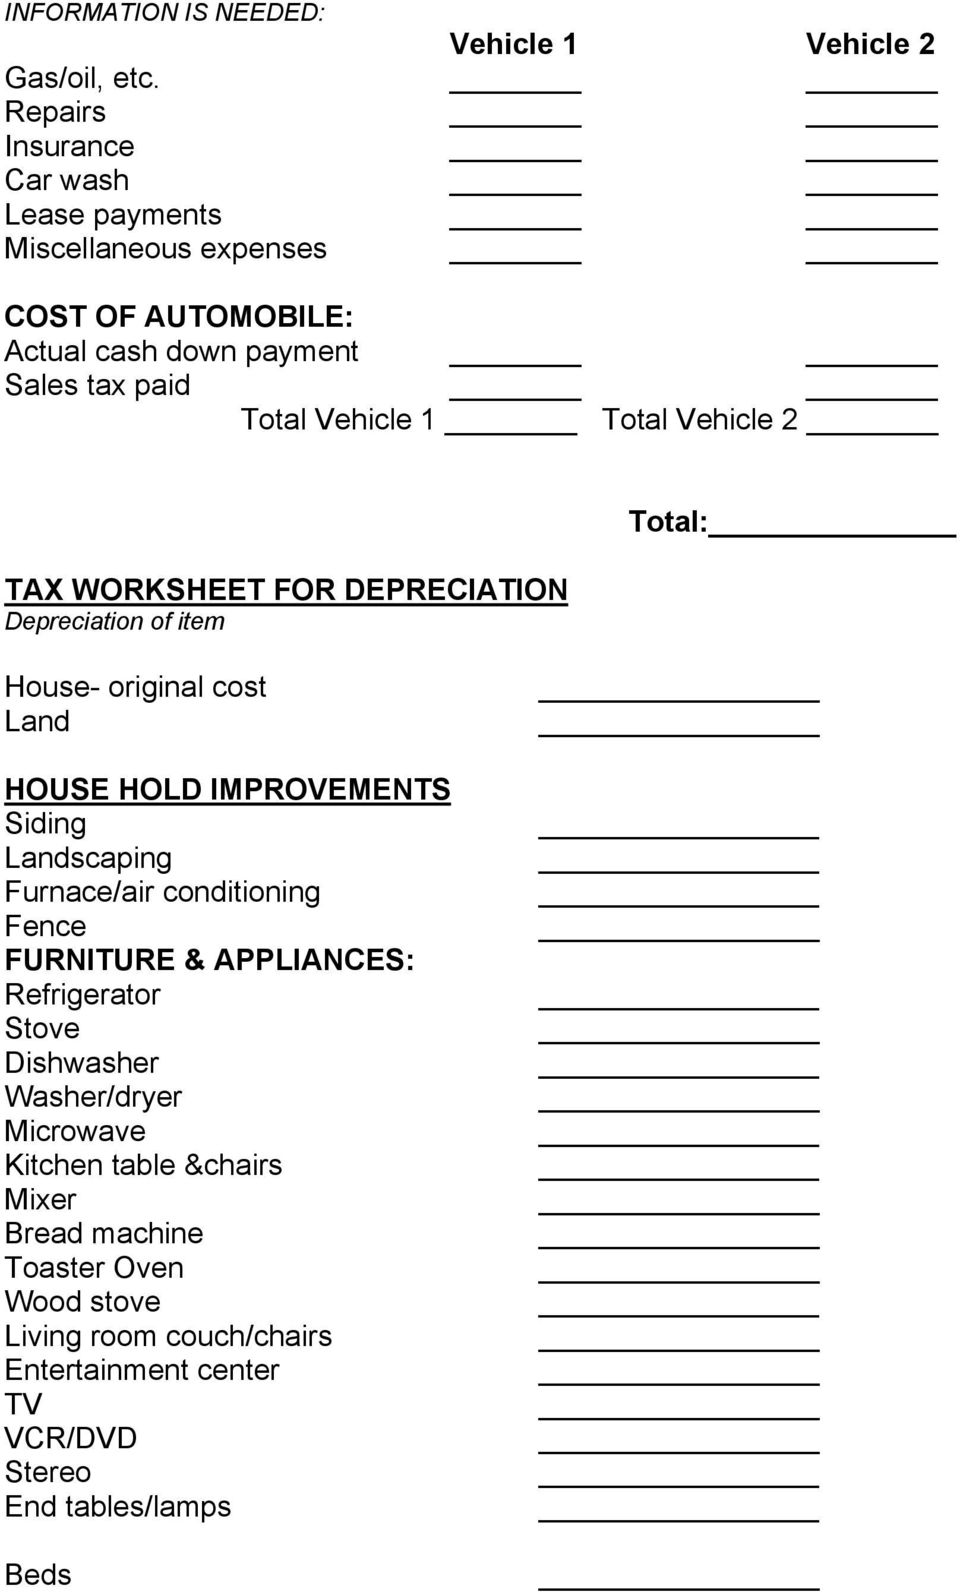 Child care business form for taxes pdf vehicle 2 tax worksheet for depreciation depreciation of item total house original cost land ibookread ePUb